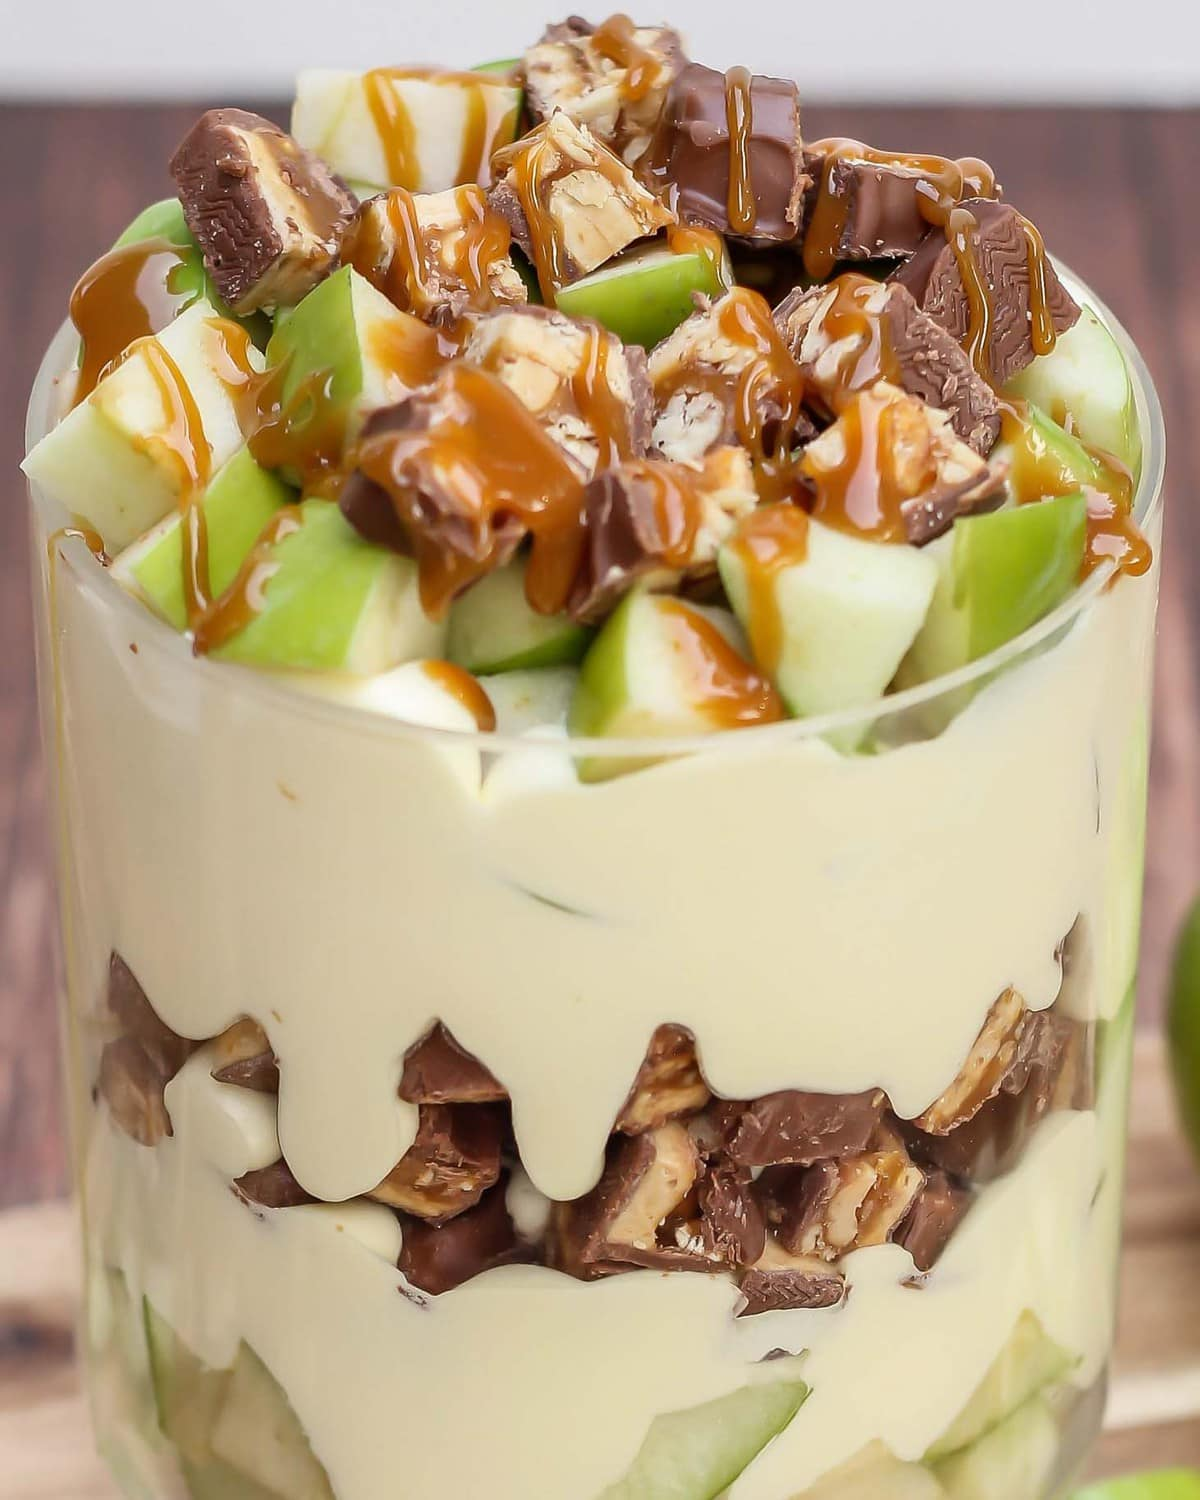 Snicker Apple Salad topped with caramel drizzle